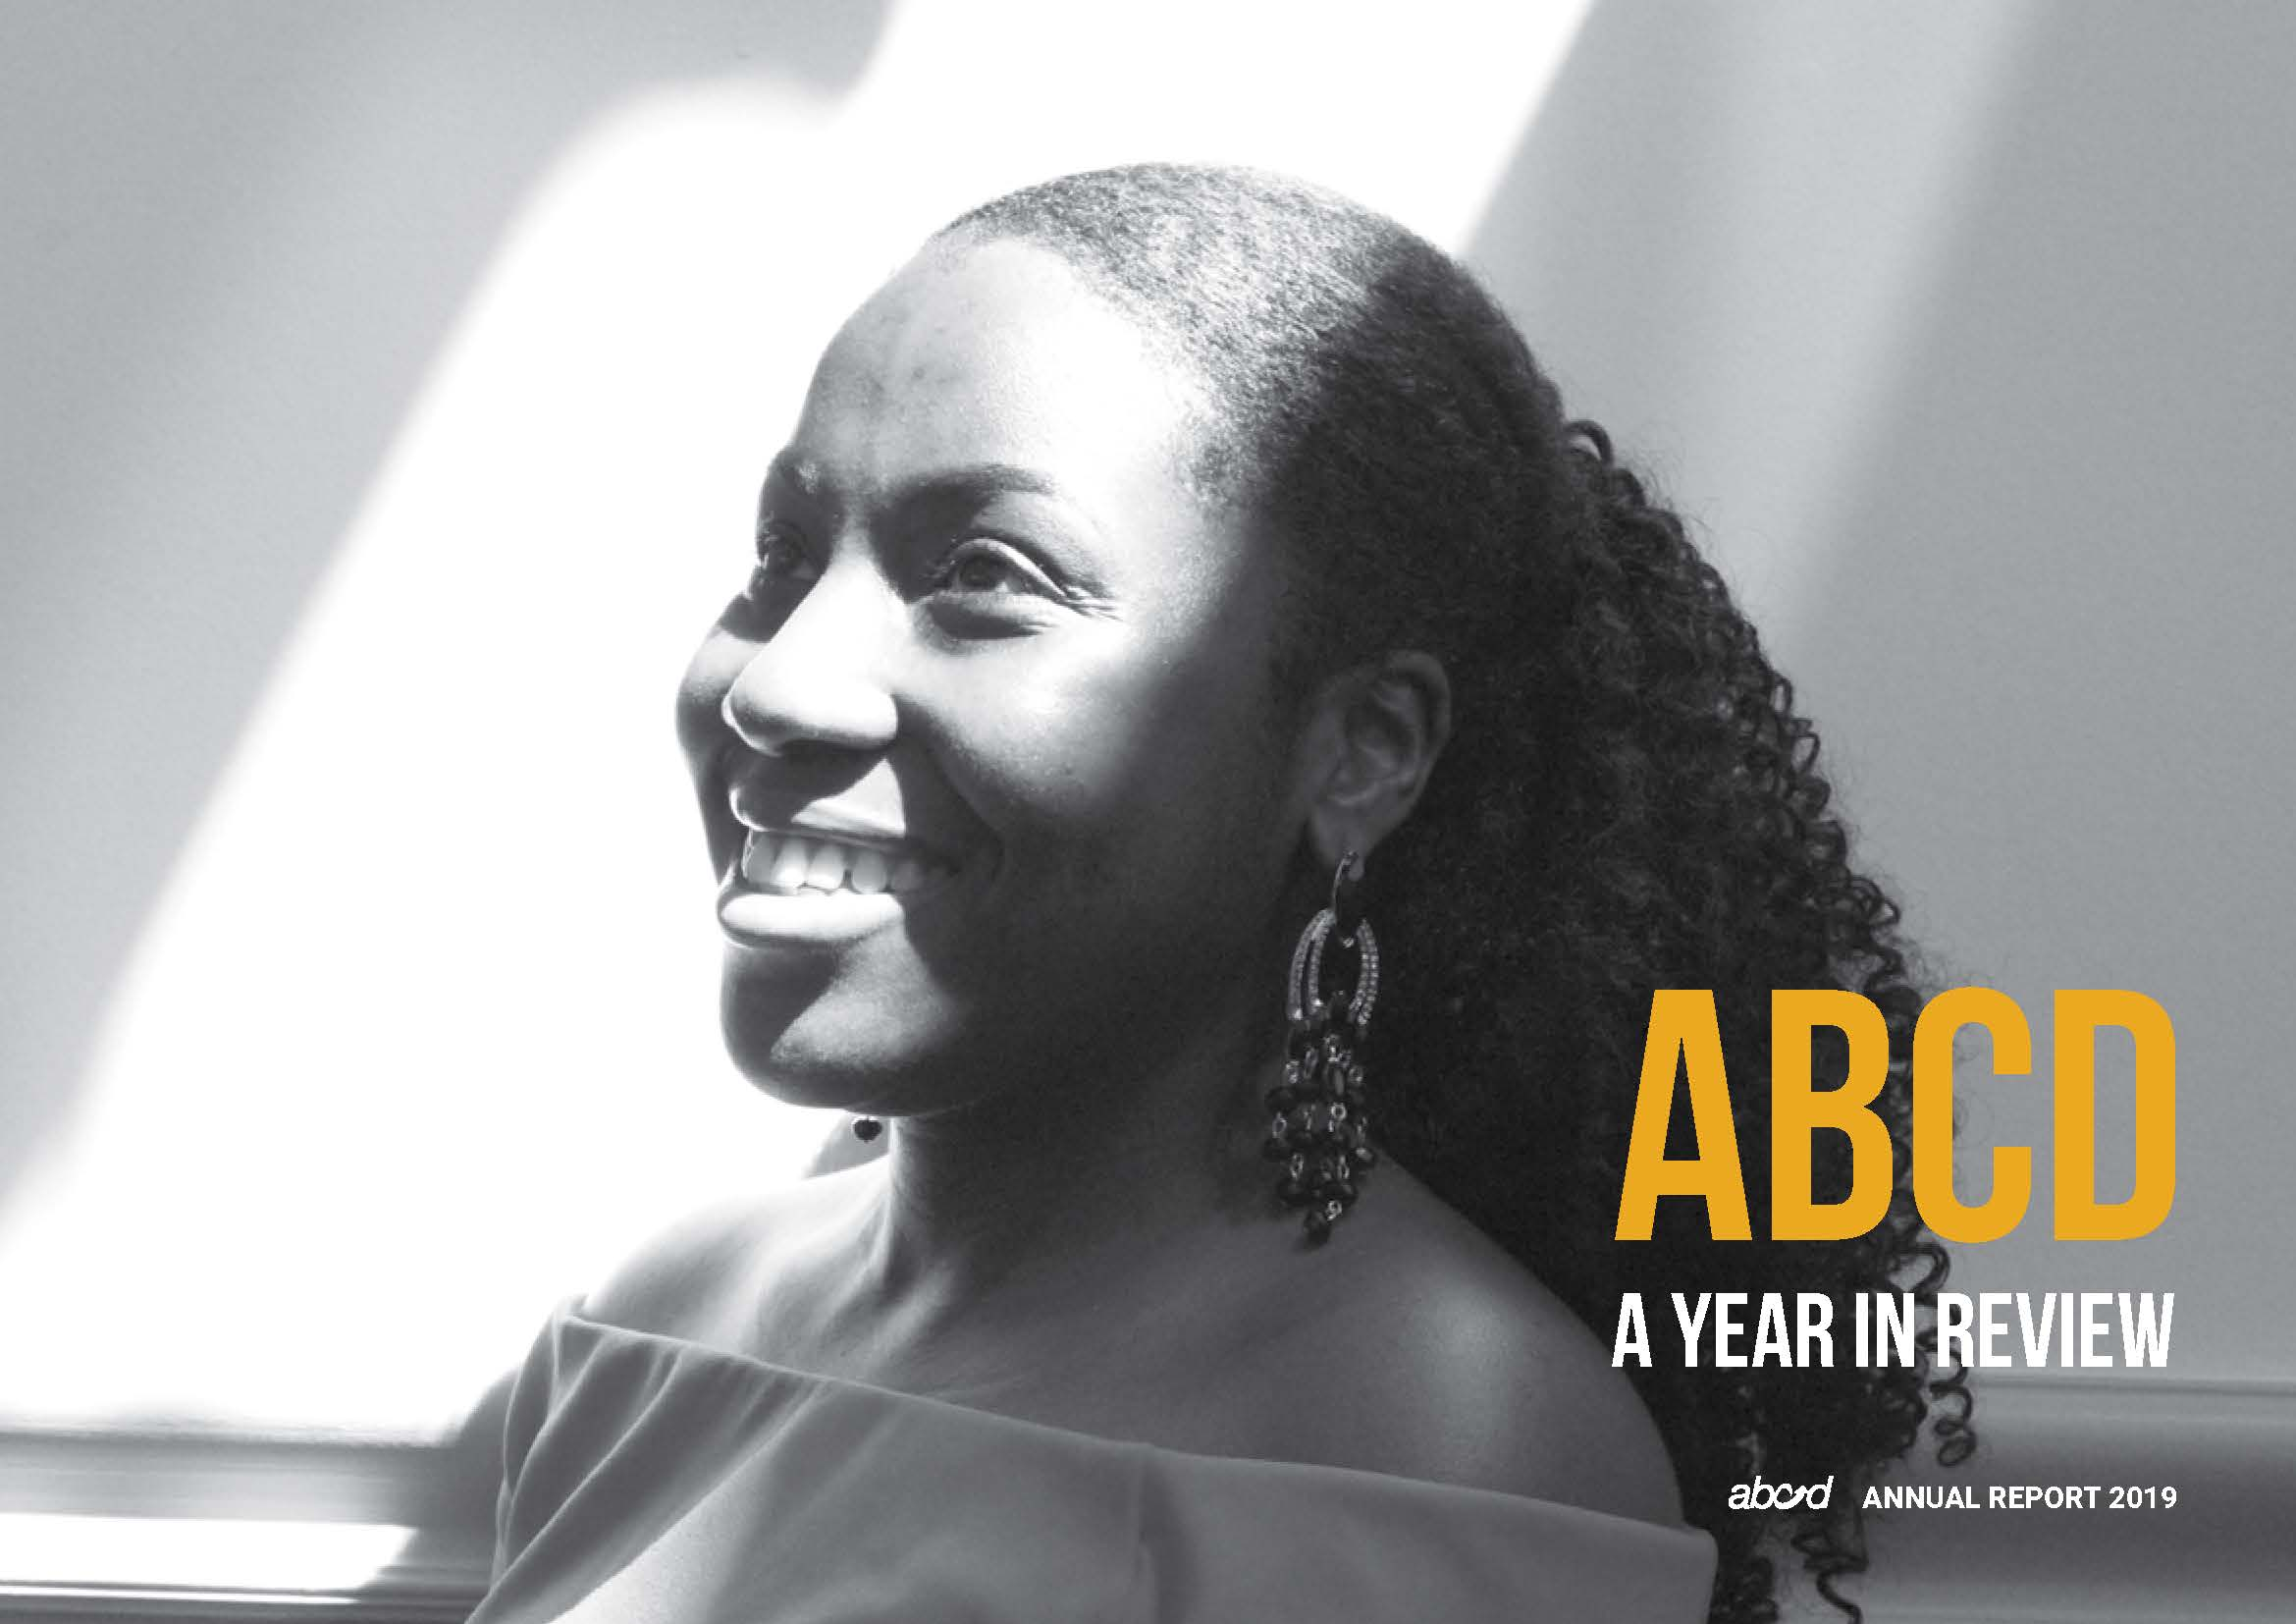 ABCD annual report 2019 YEAR IN REVIEW